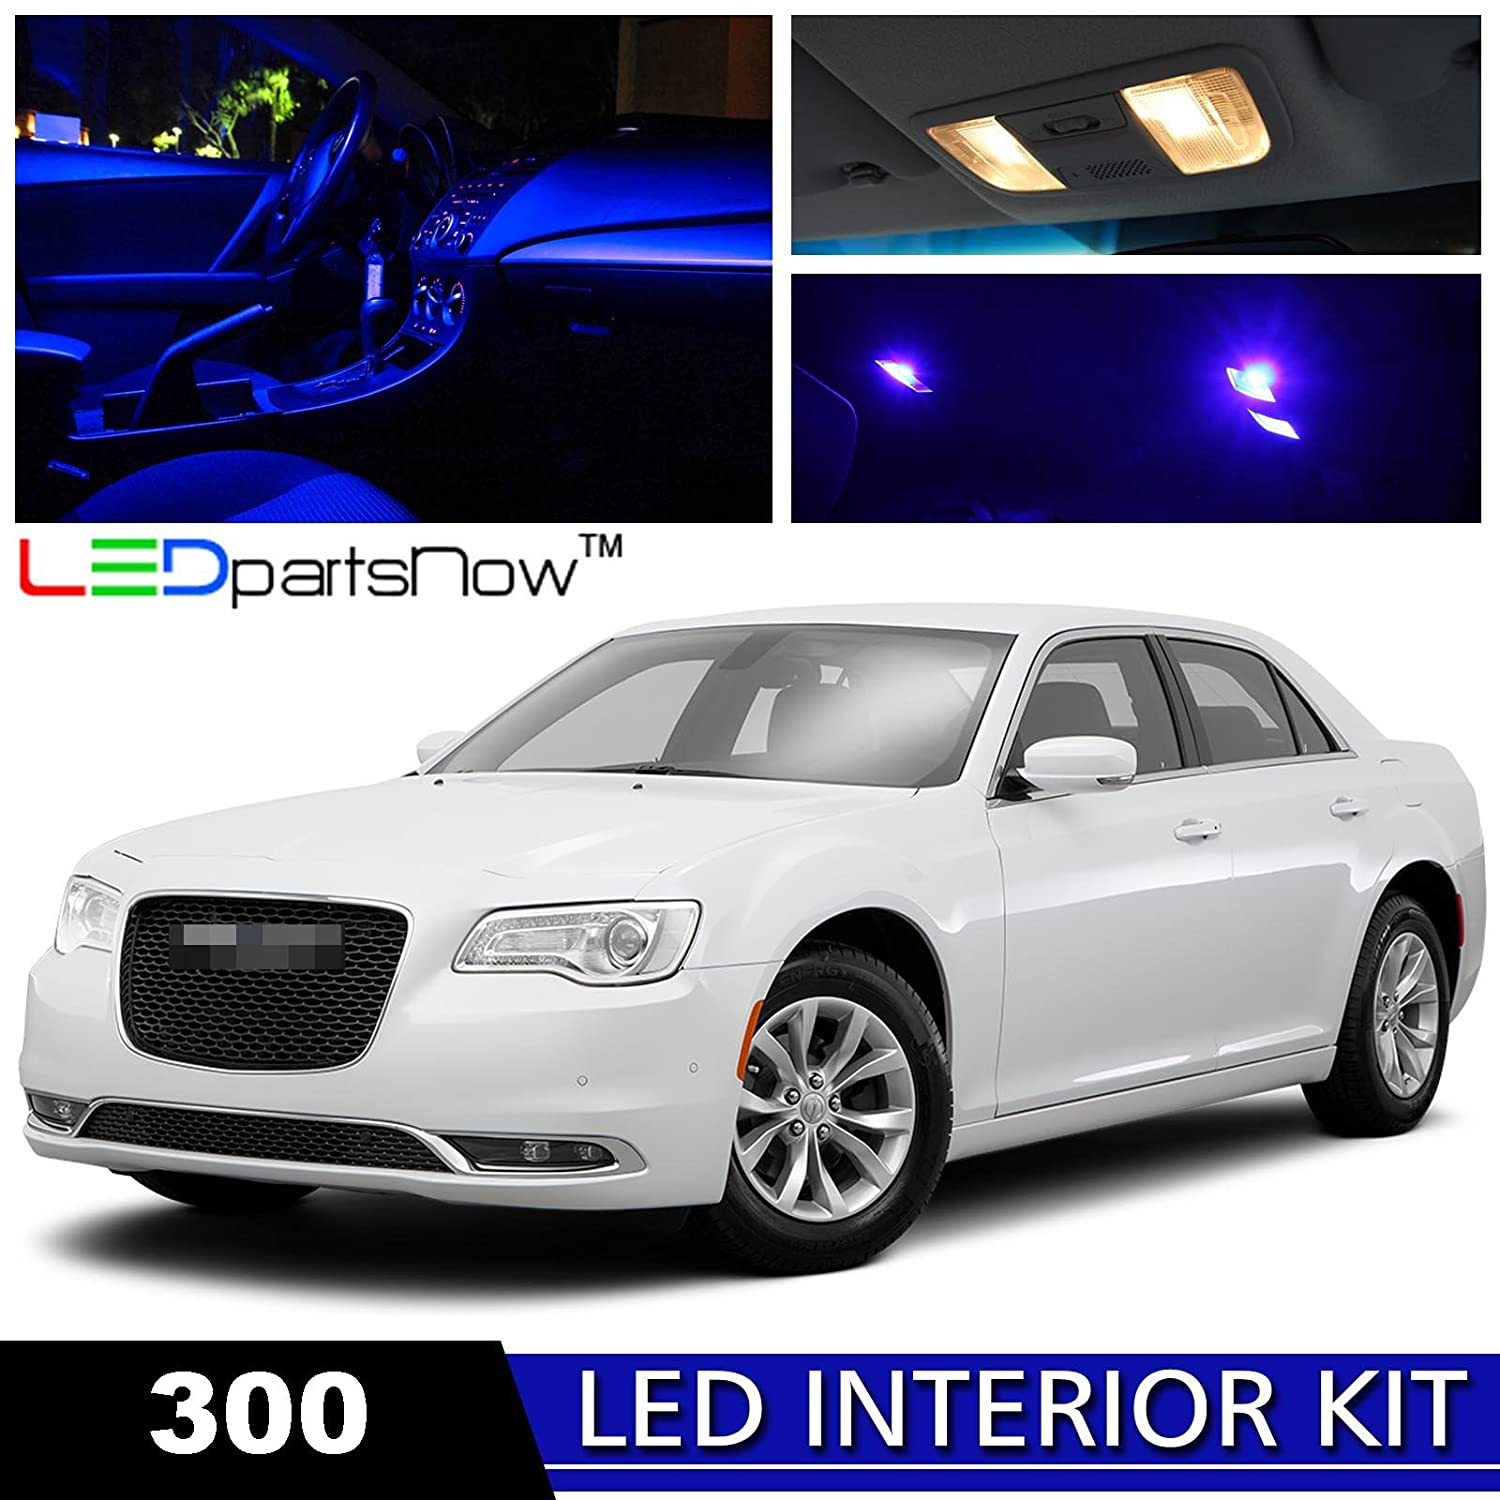 Ledpartsnow 2015 2017 Chrysler 300 Led Interior Lights 2010 Battery Wiring Diagram Accessories Replacement Package Kit 17 Pieces Blue Automotive